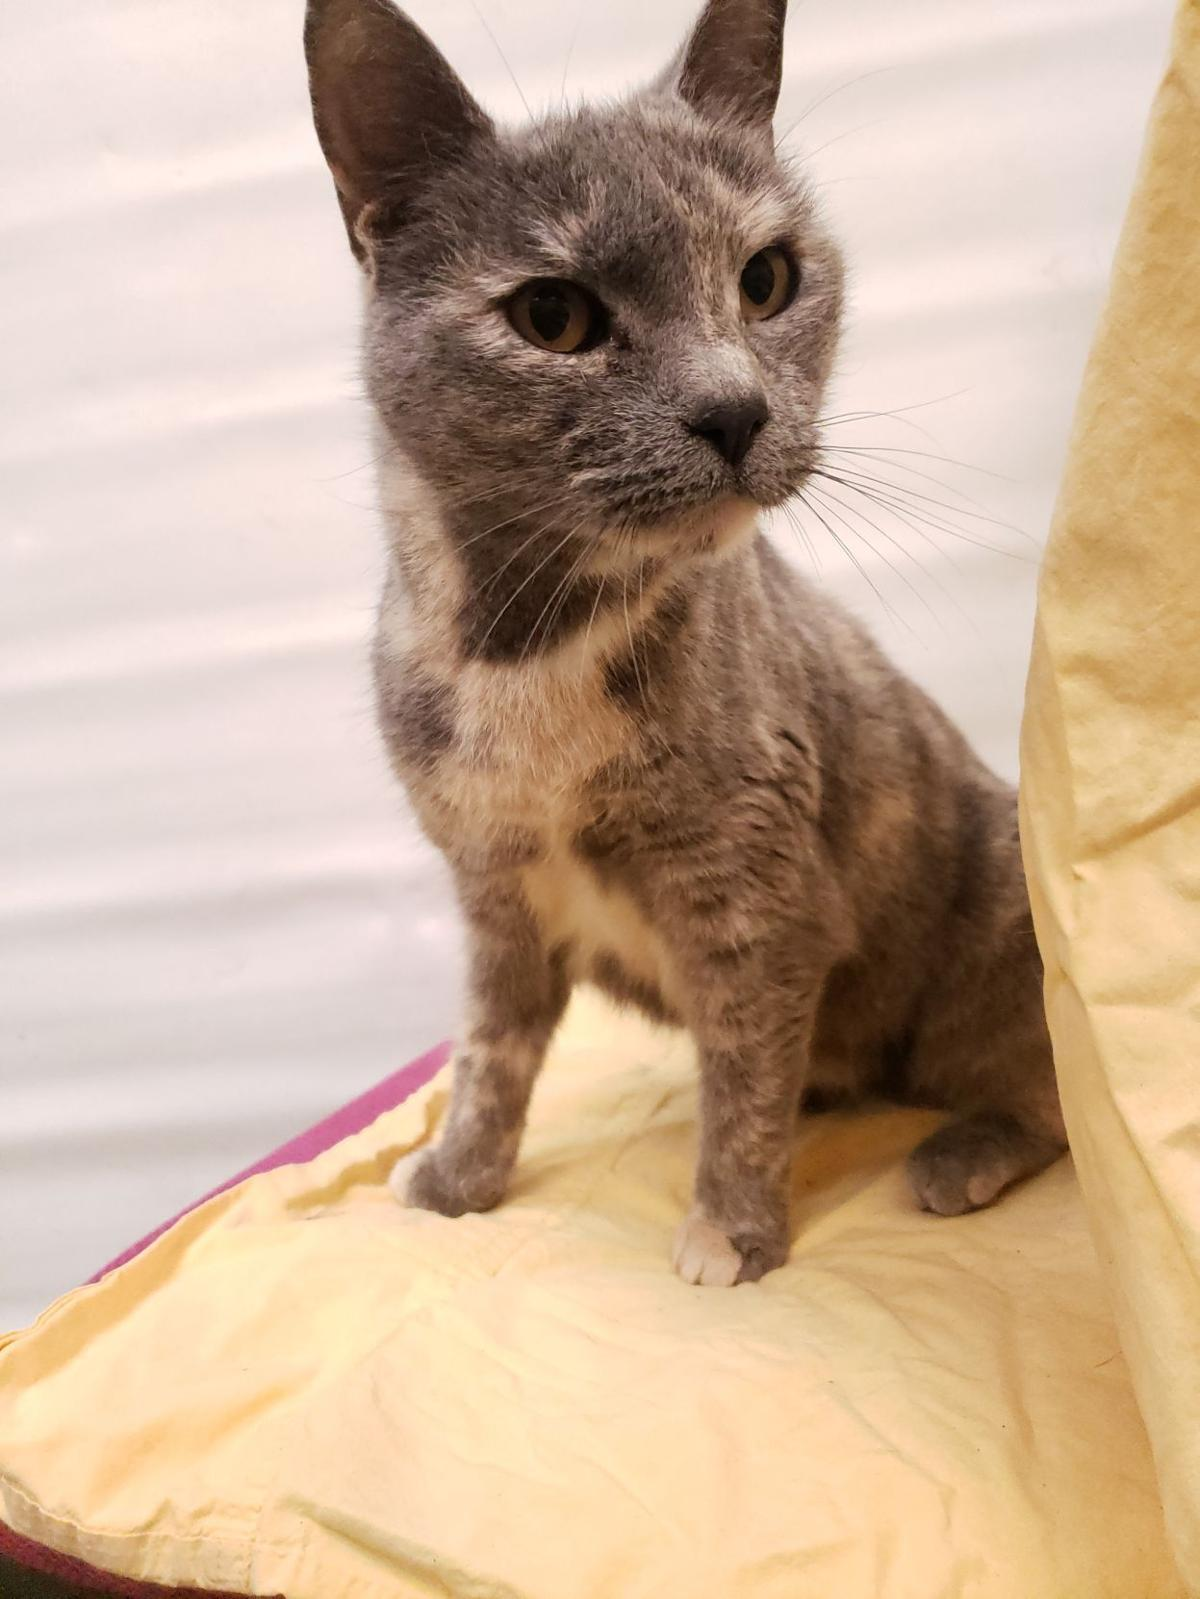 'Sadie' is animal shelter's 'Cat of the Week'